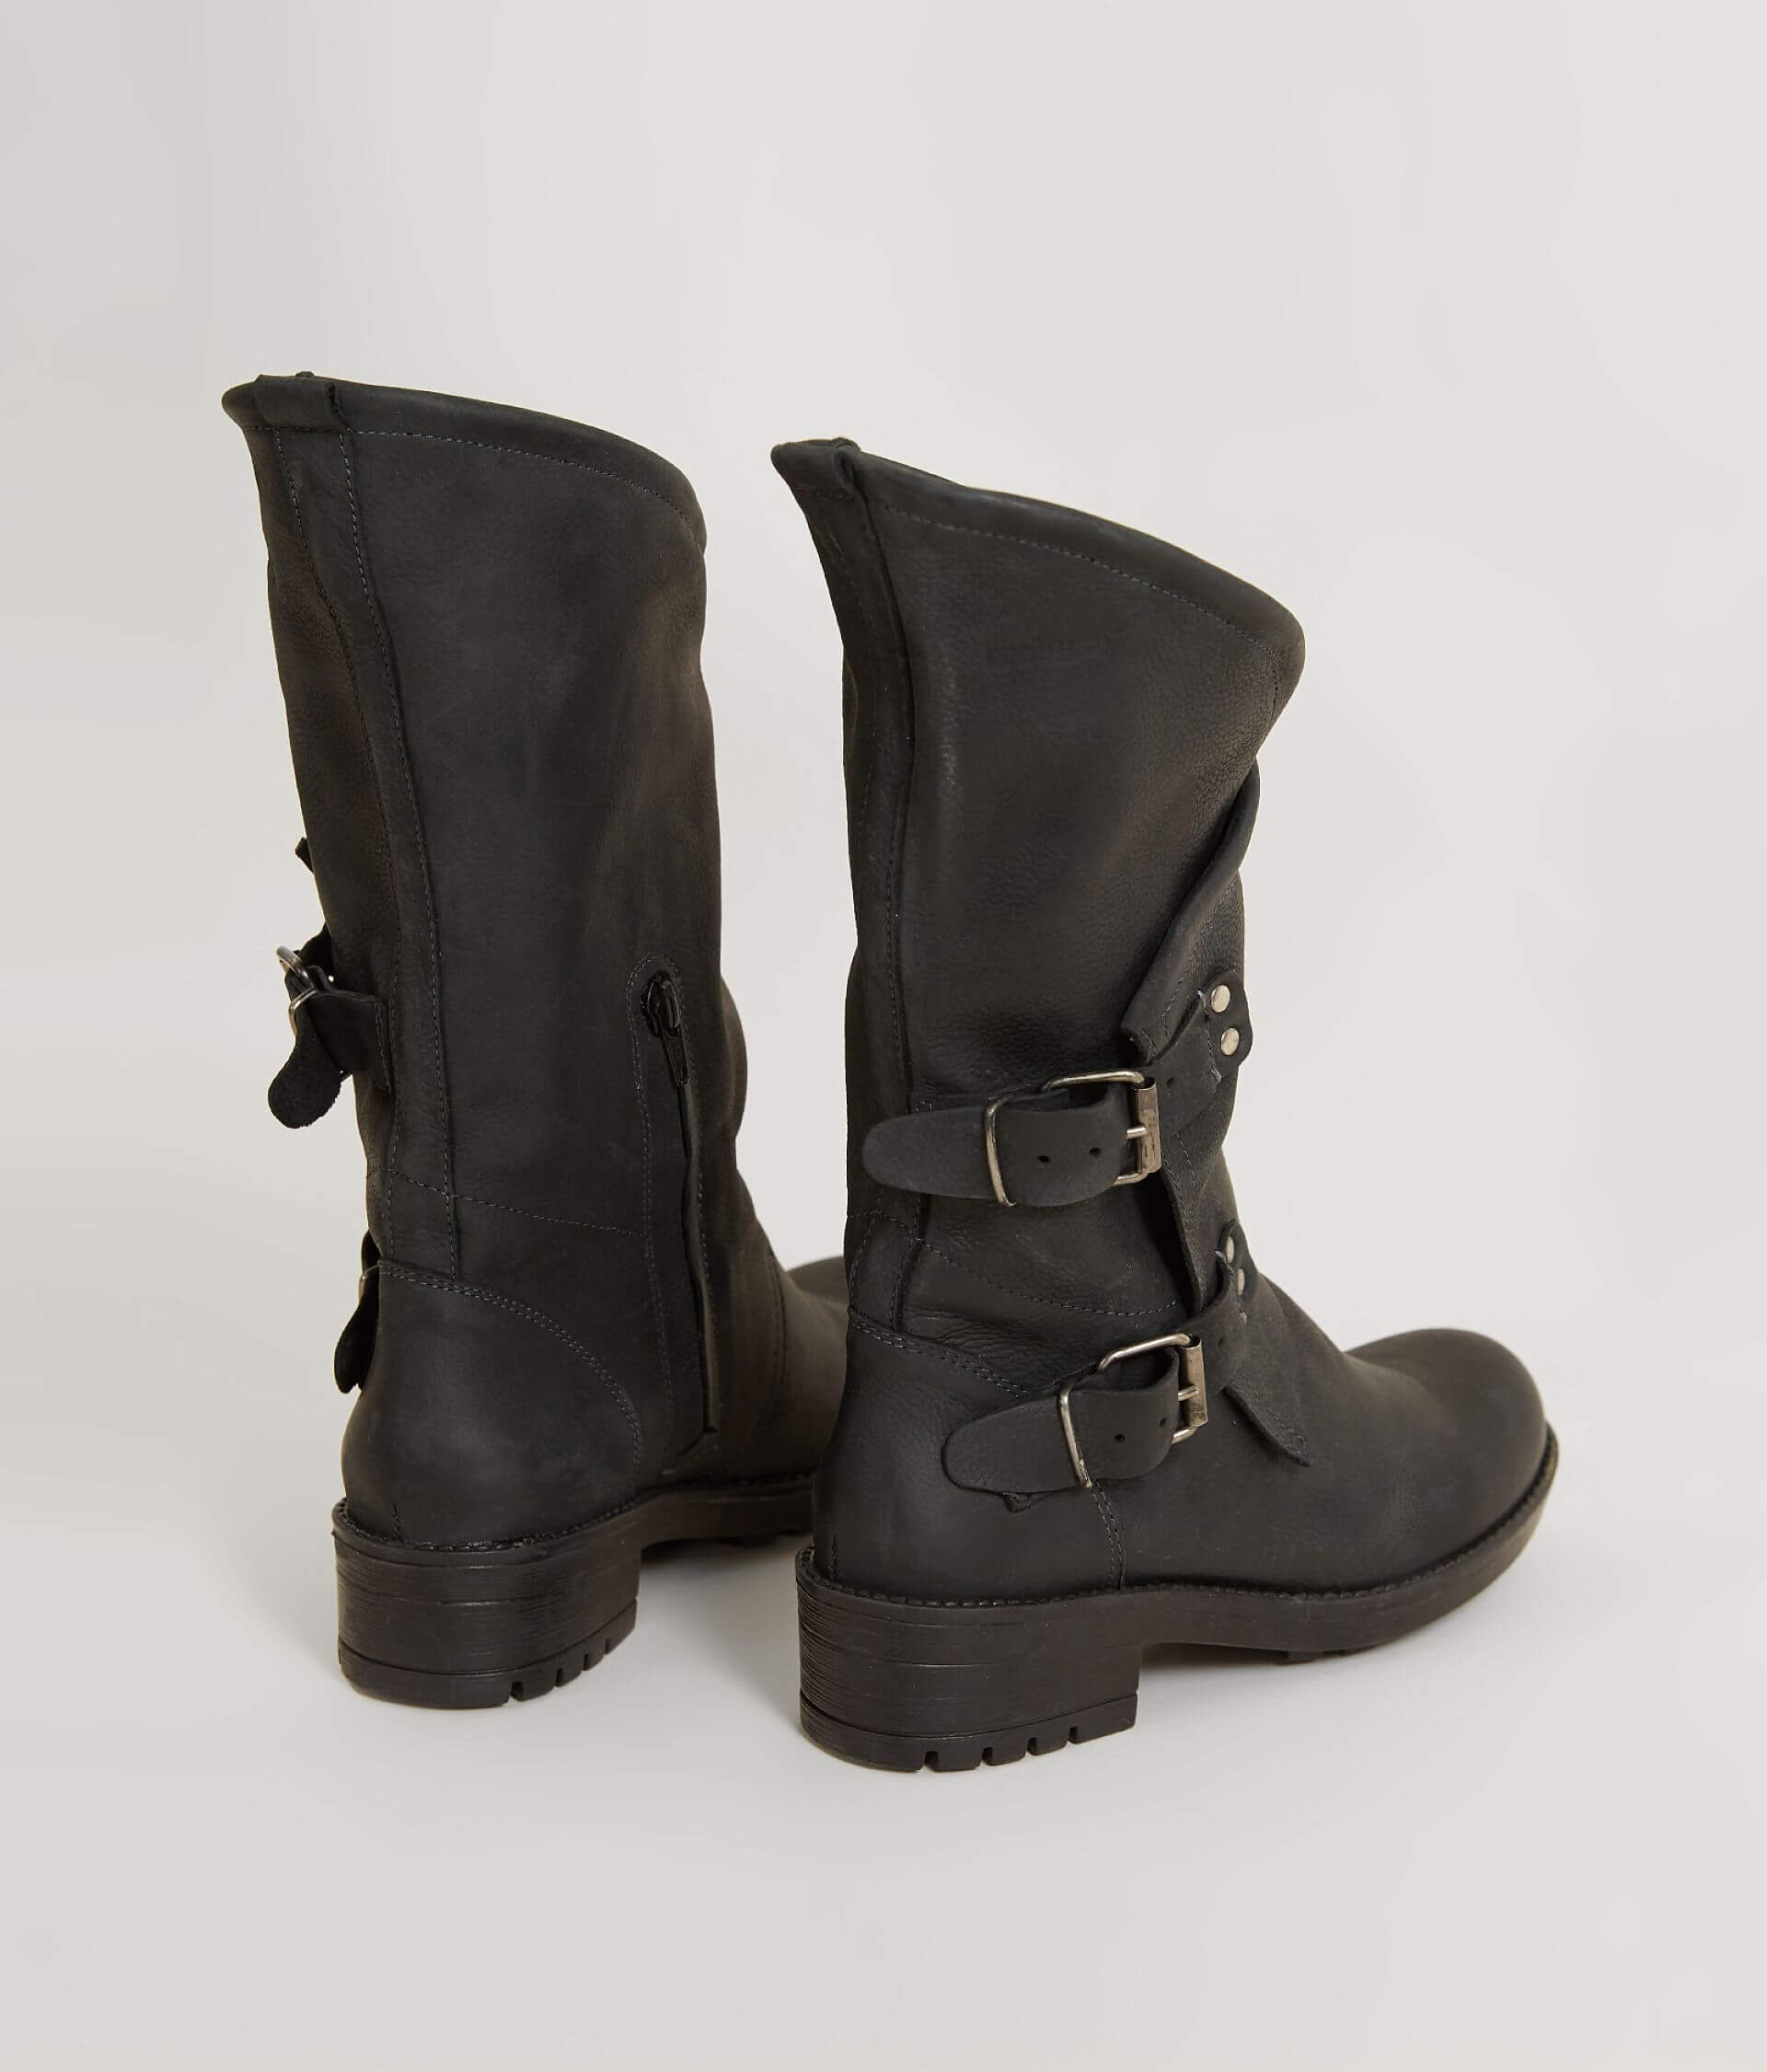 08b4bd9e4ab Coolway Alida Boot - Women's Shoes in Black   Buckle